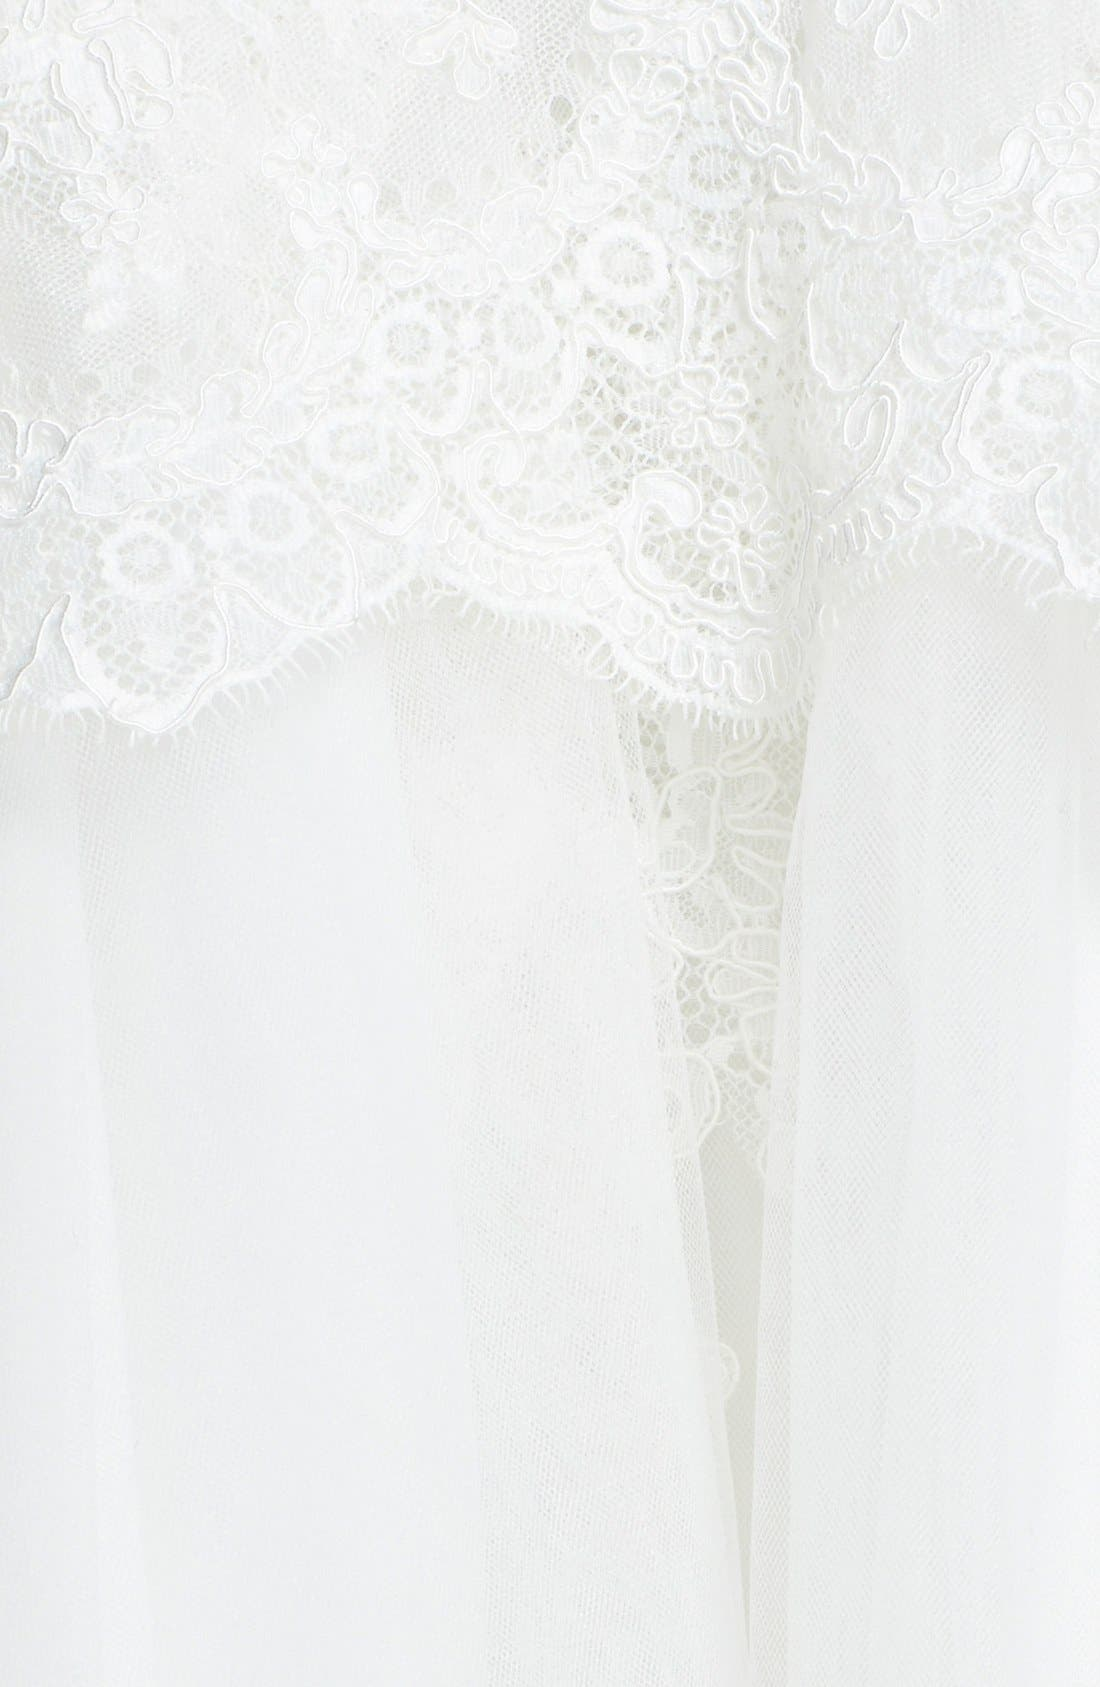 Alternate Image 3  - BLISS Monique Lhuillier Lace Overlay Tulle Trumpet Wedding Dress (In Stores Only)